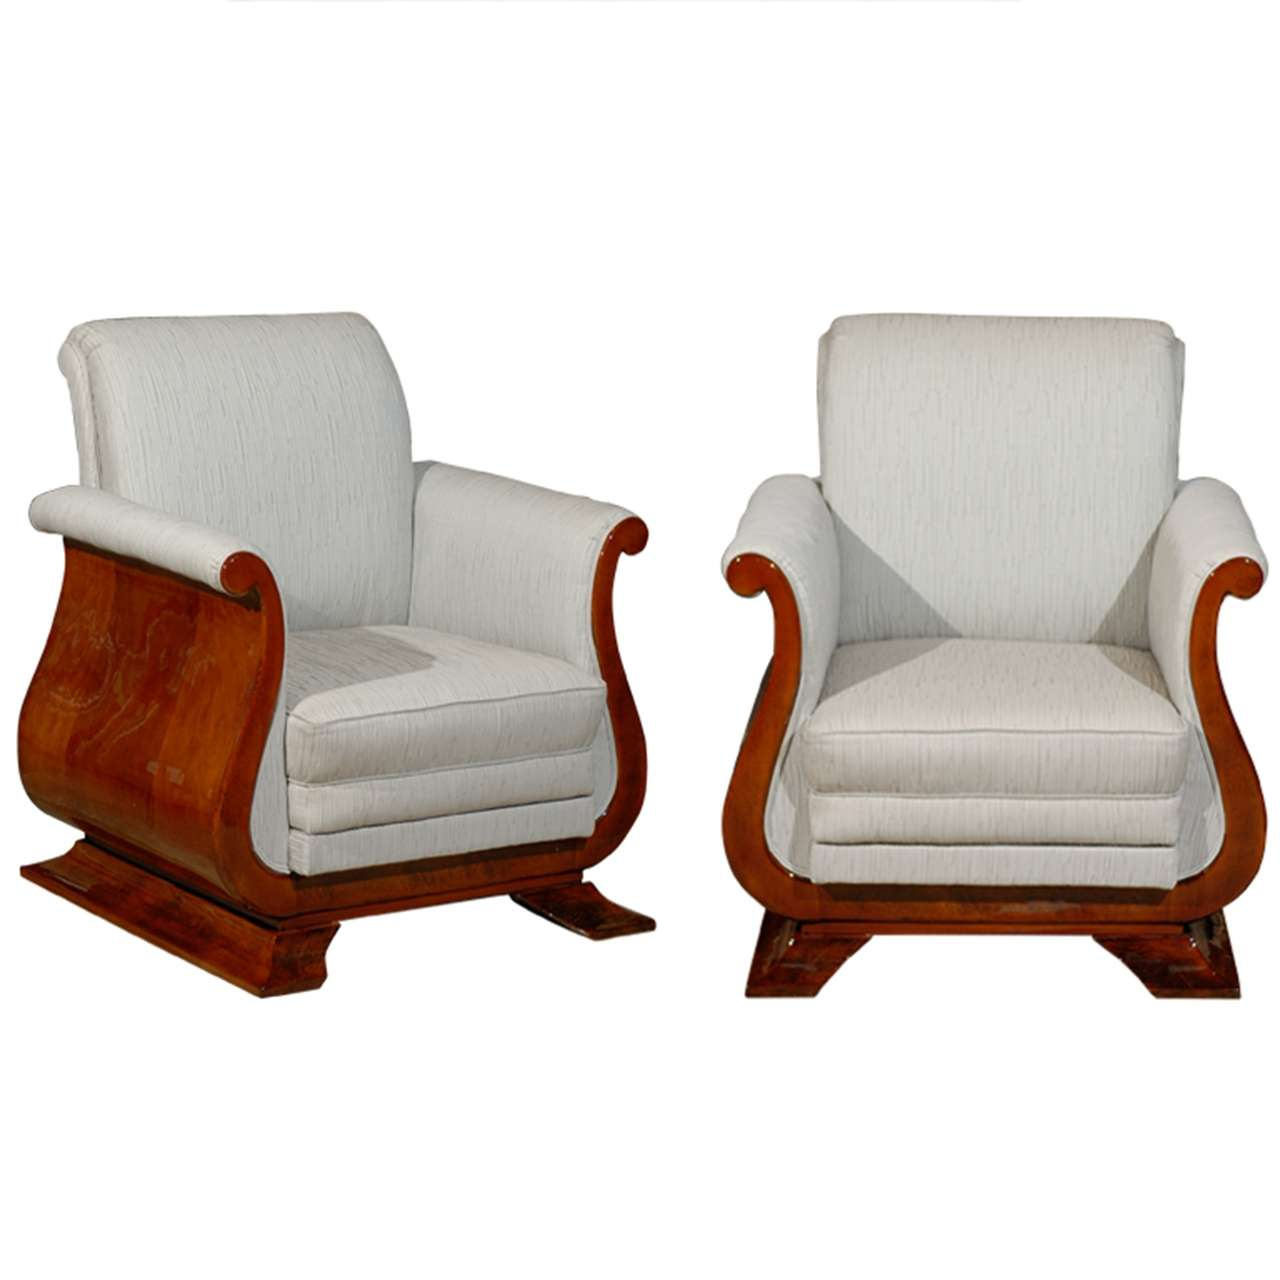 Pair of Art Deco French Tulip Chairs